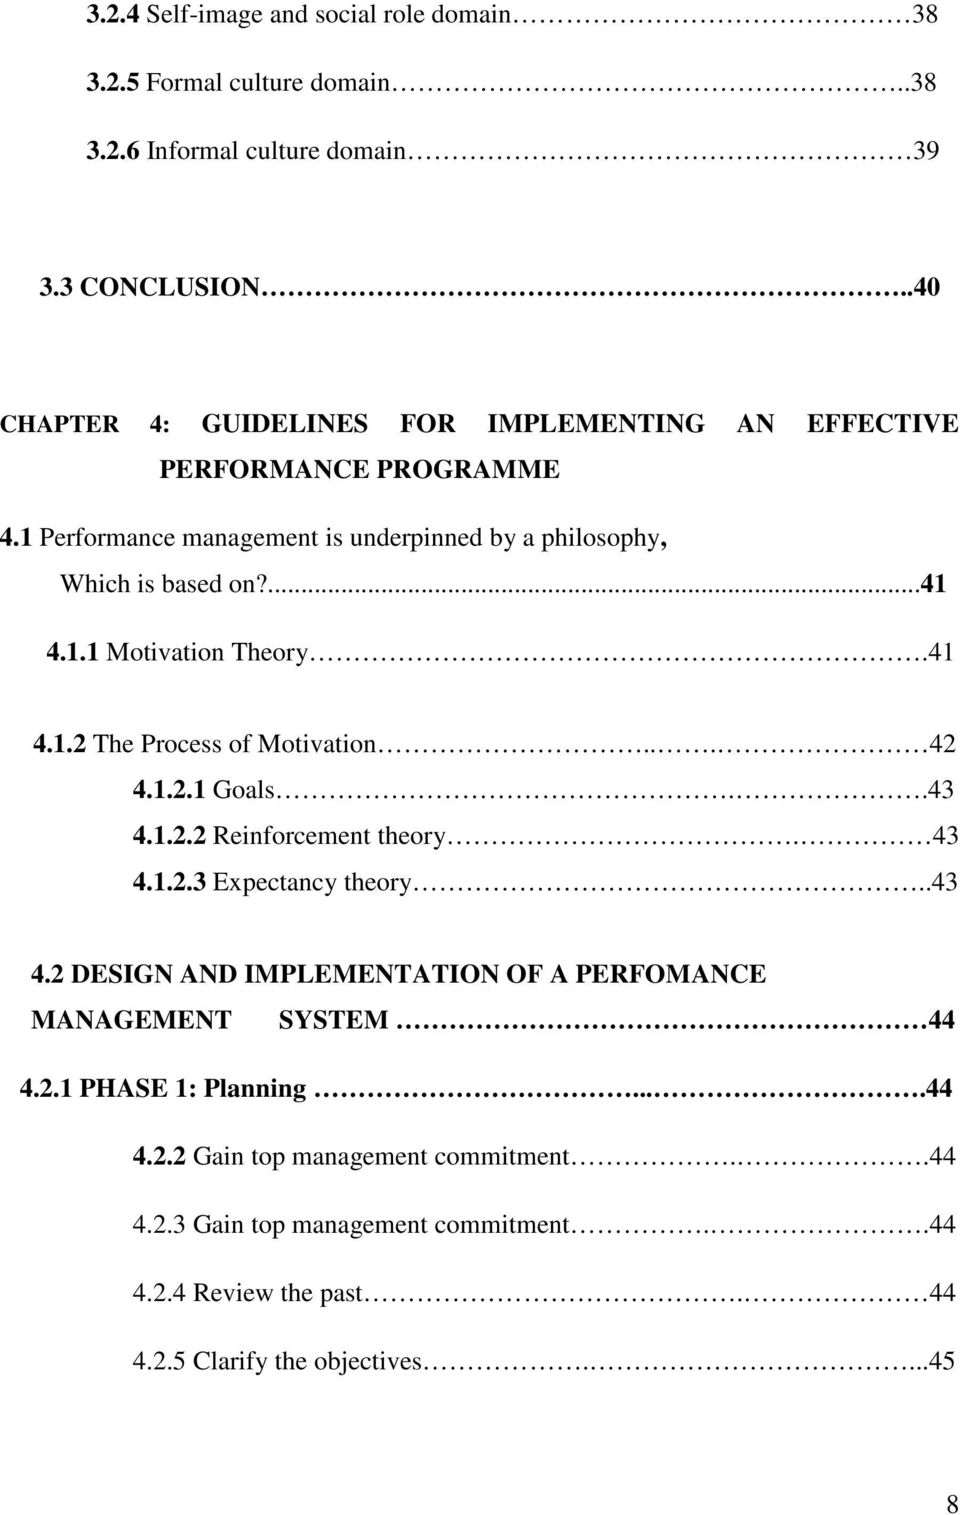 41 4.1.2 The Process of Motivation... 42 4.1.2.1 Goals..43 4.1.2.2 Reinforcement theory. 43 4.1.2.3 Expectancy theory..43 4.2 DESIGN AND IMPLEMENTATION OF A PERFOMANCE MANAGEMENT SYSTEM 44 4.